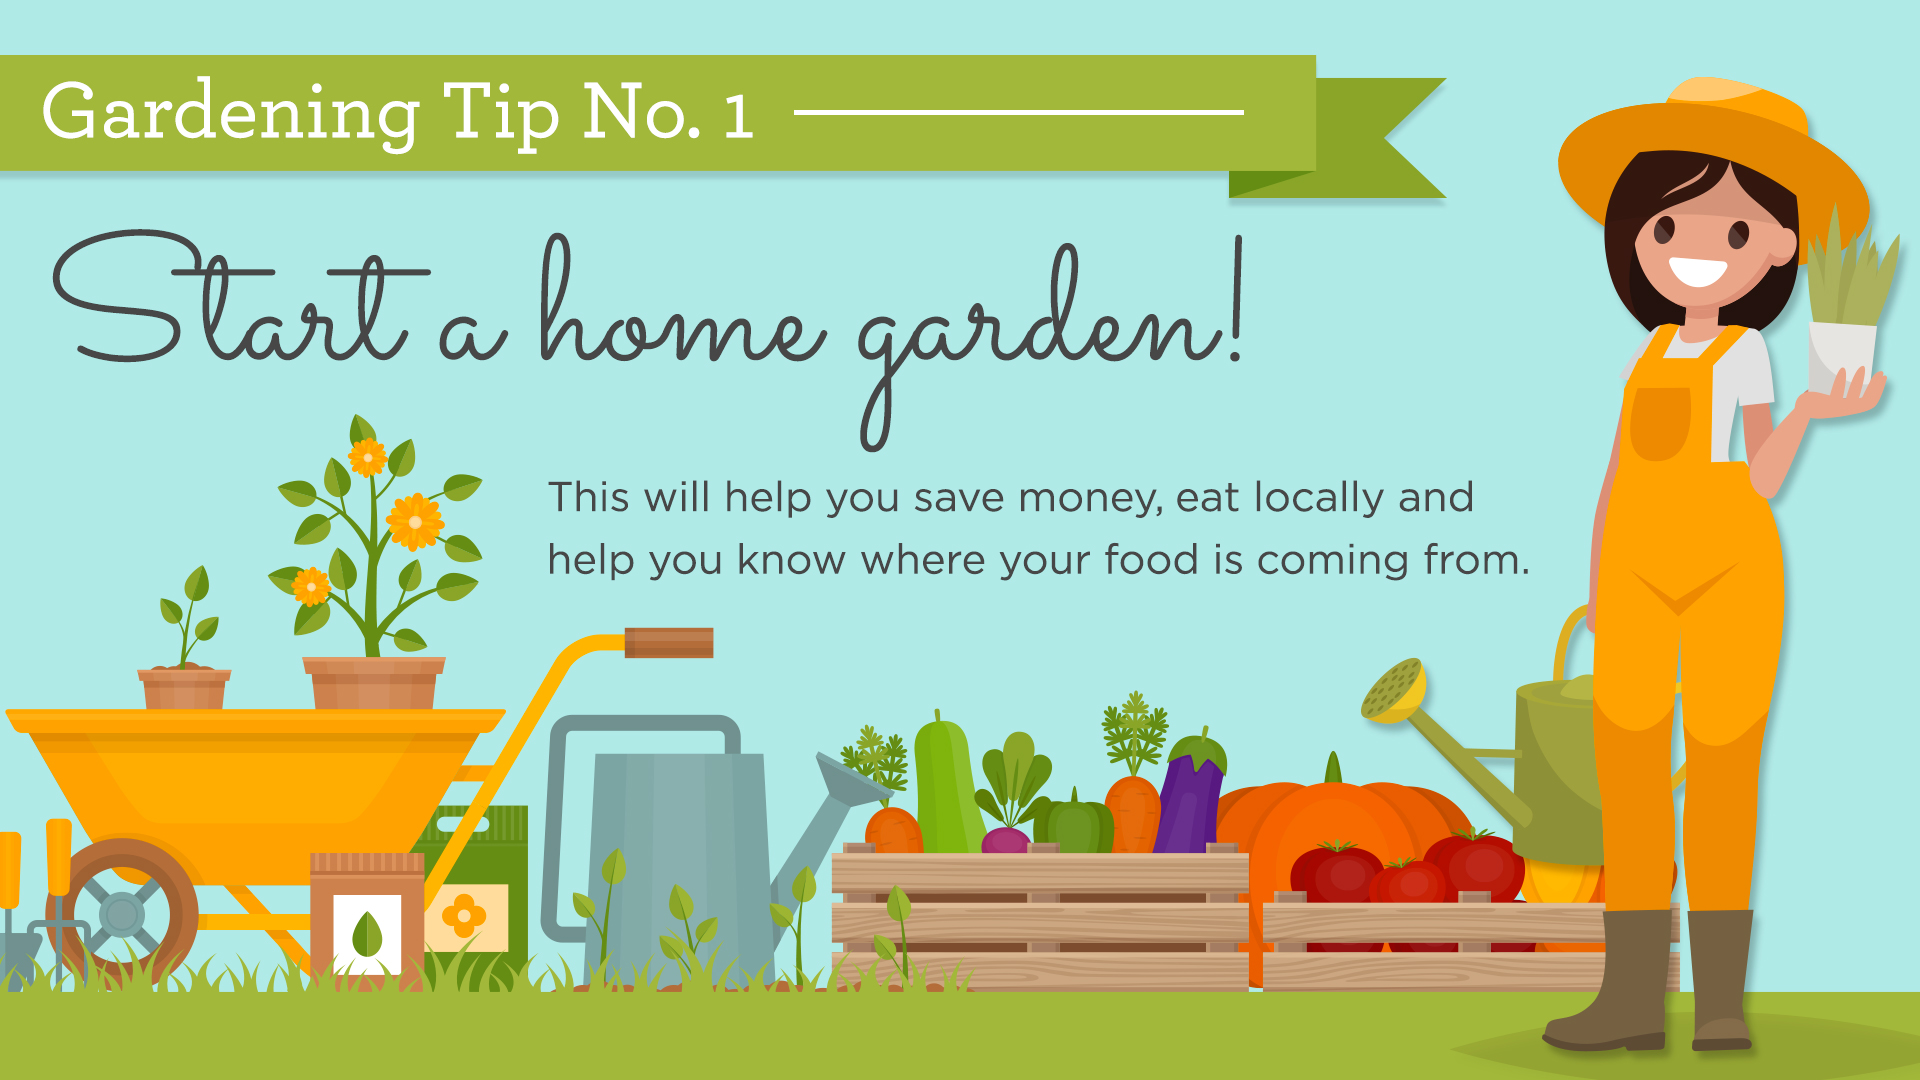 HCSOU_OK01_GardeningTip01_March2018.jpg